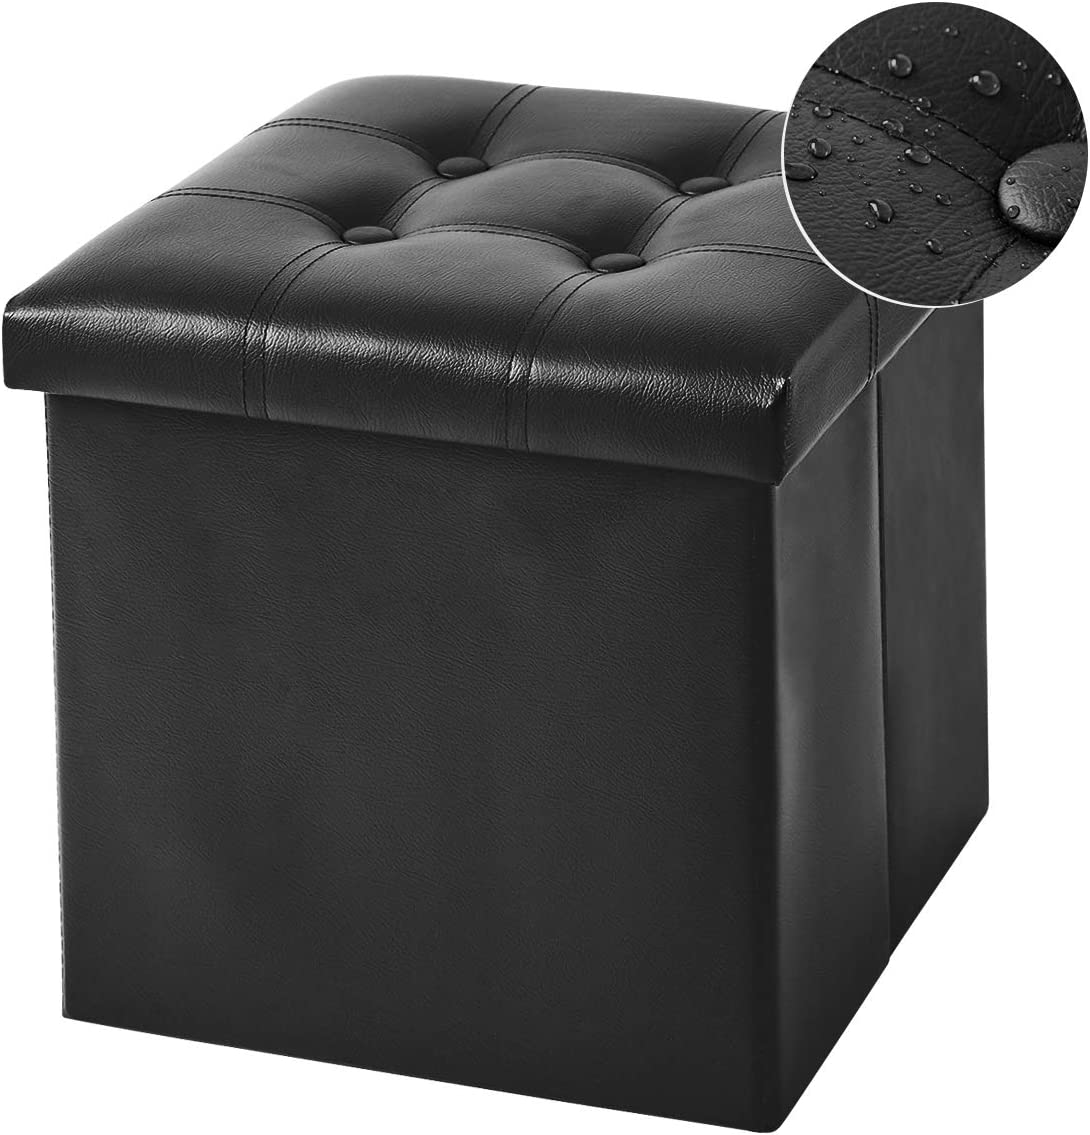 YOUDENOVA 15 inches Folding Storage Ottoman Black, Leather Support 350lbs Cube Storage Boxes Footrest Stool Small Ottomans with Foam Padded Seat